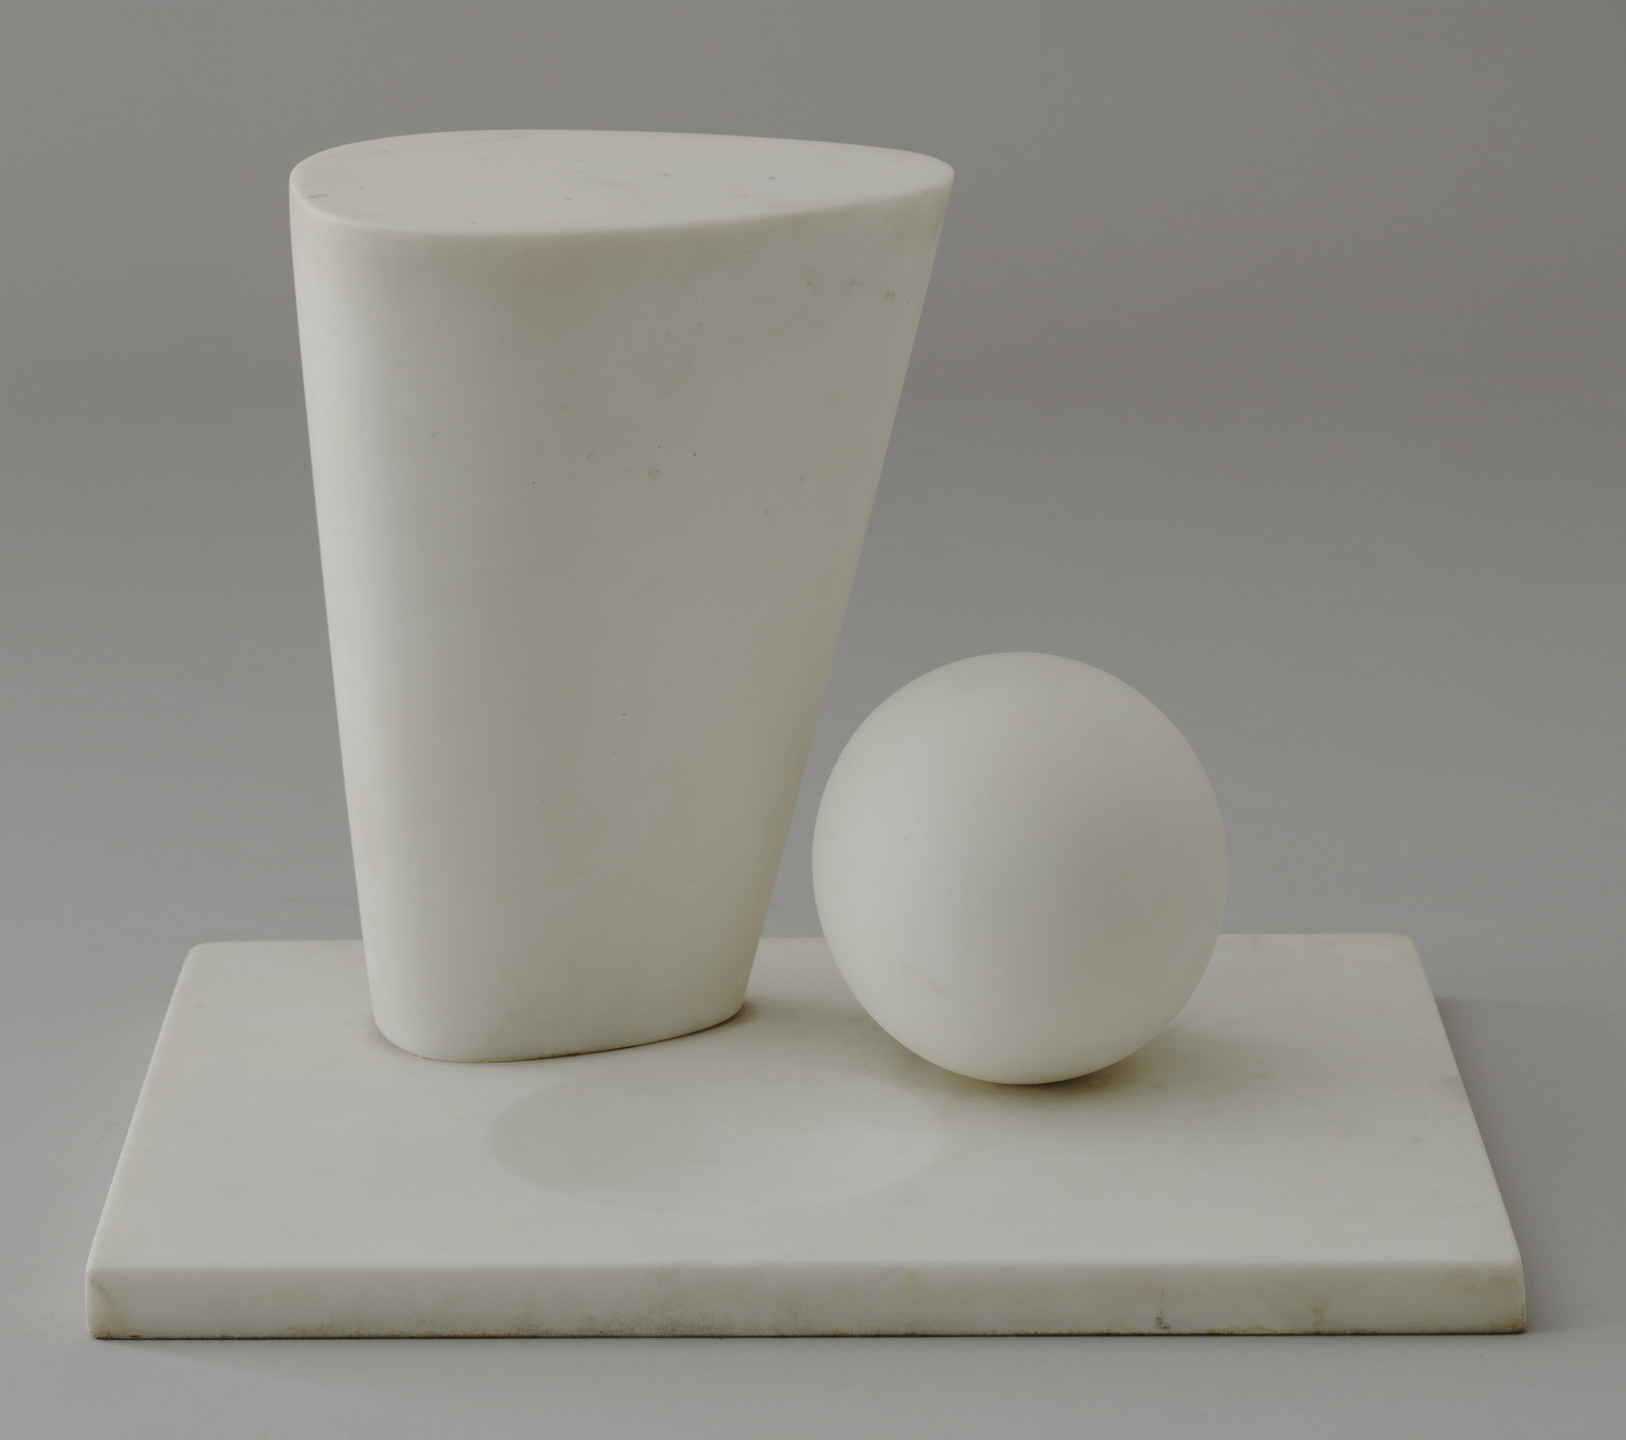 Barbara Hepworth. Conoid, Sphere and Hollow. 1937